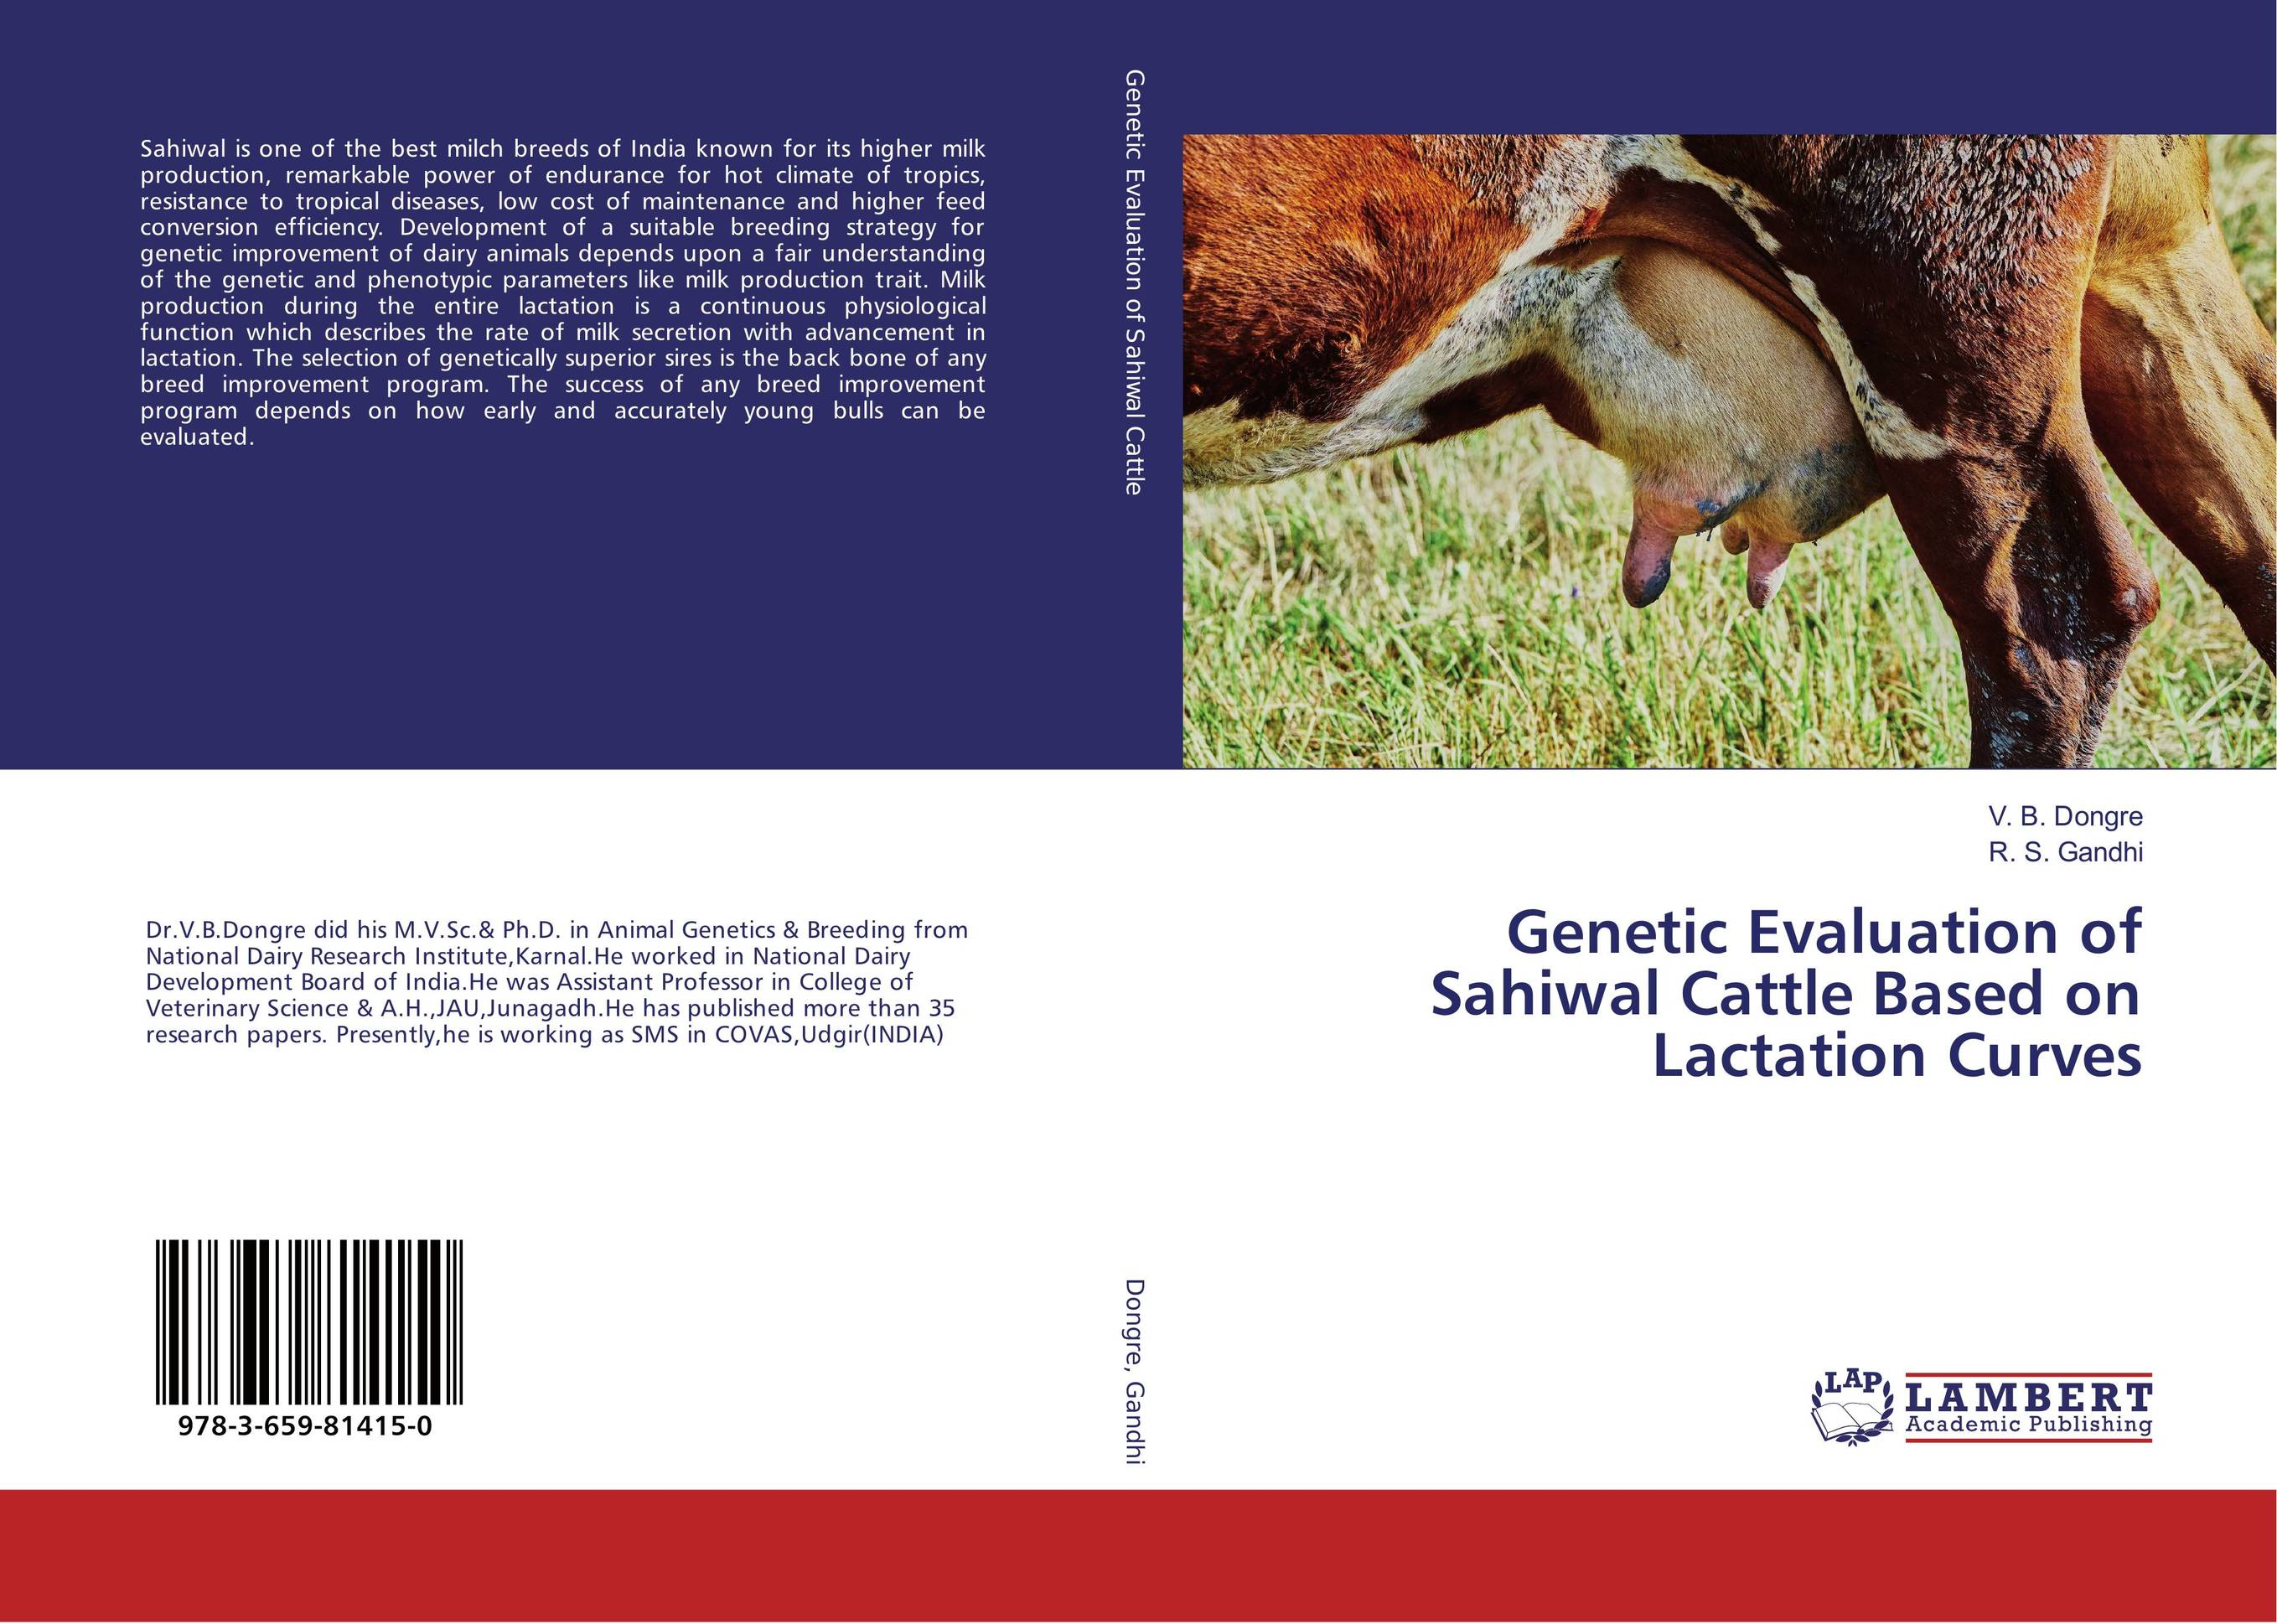 Genetic Evaluation of Sahiwal Cattle Based on Lactation Curves шлифовальная машина makita bo6040